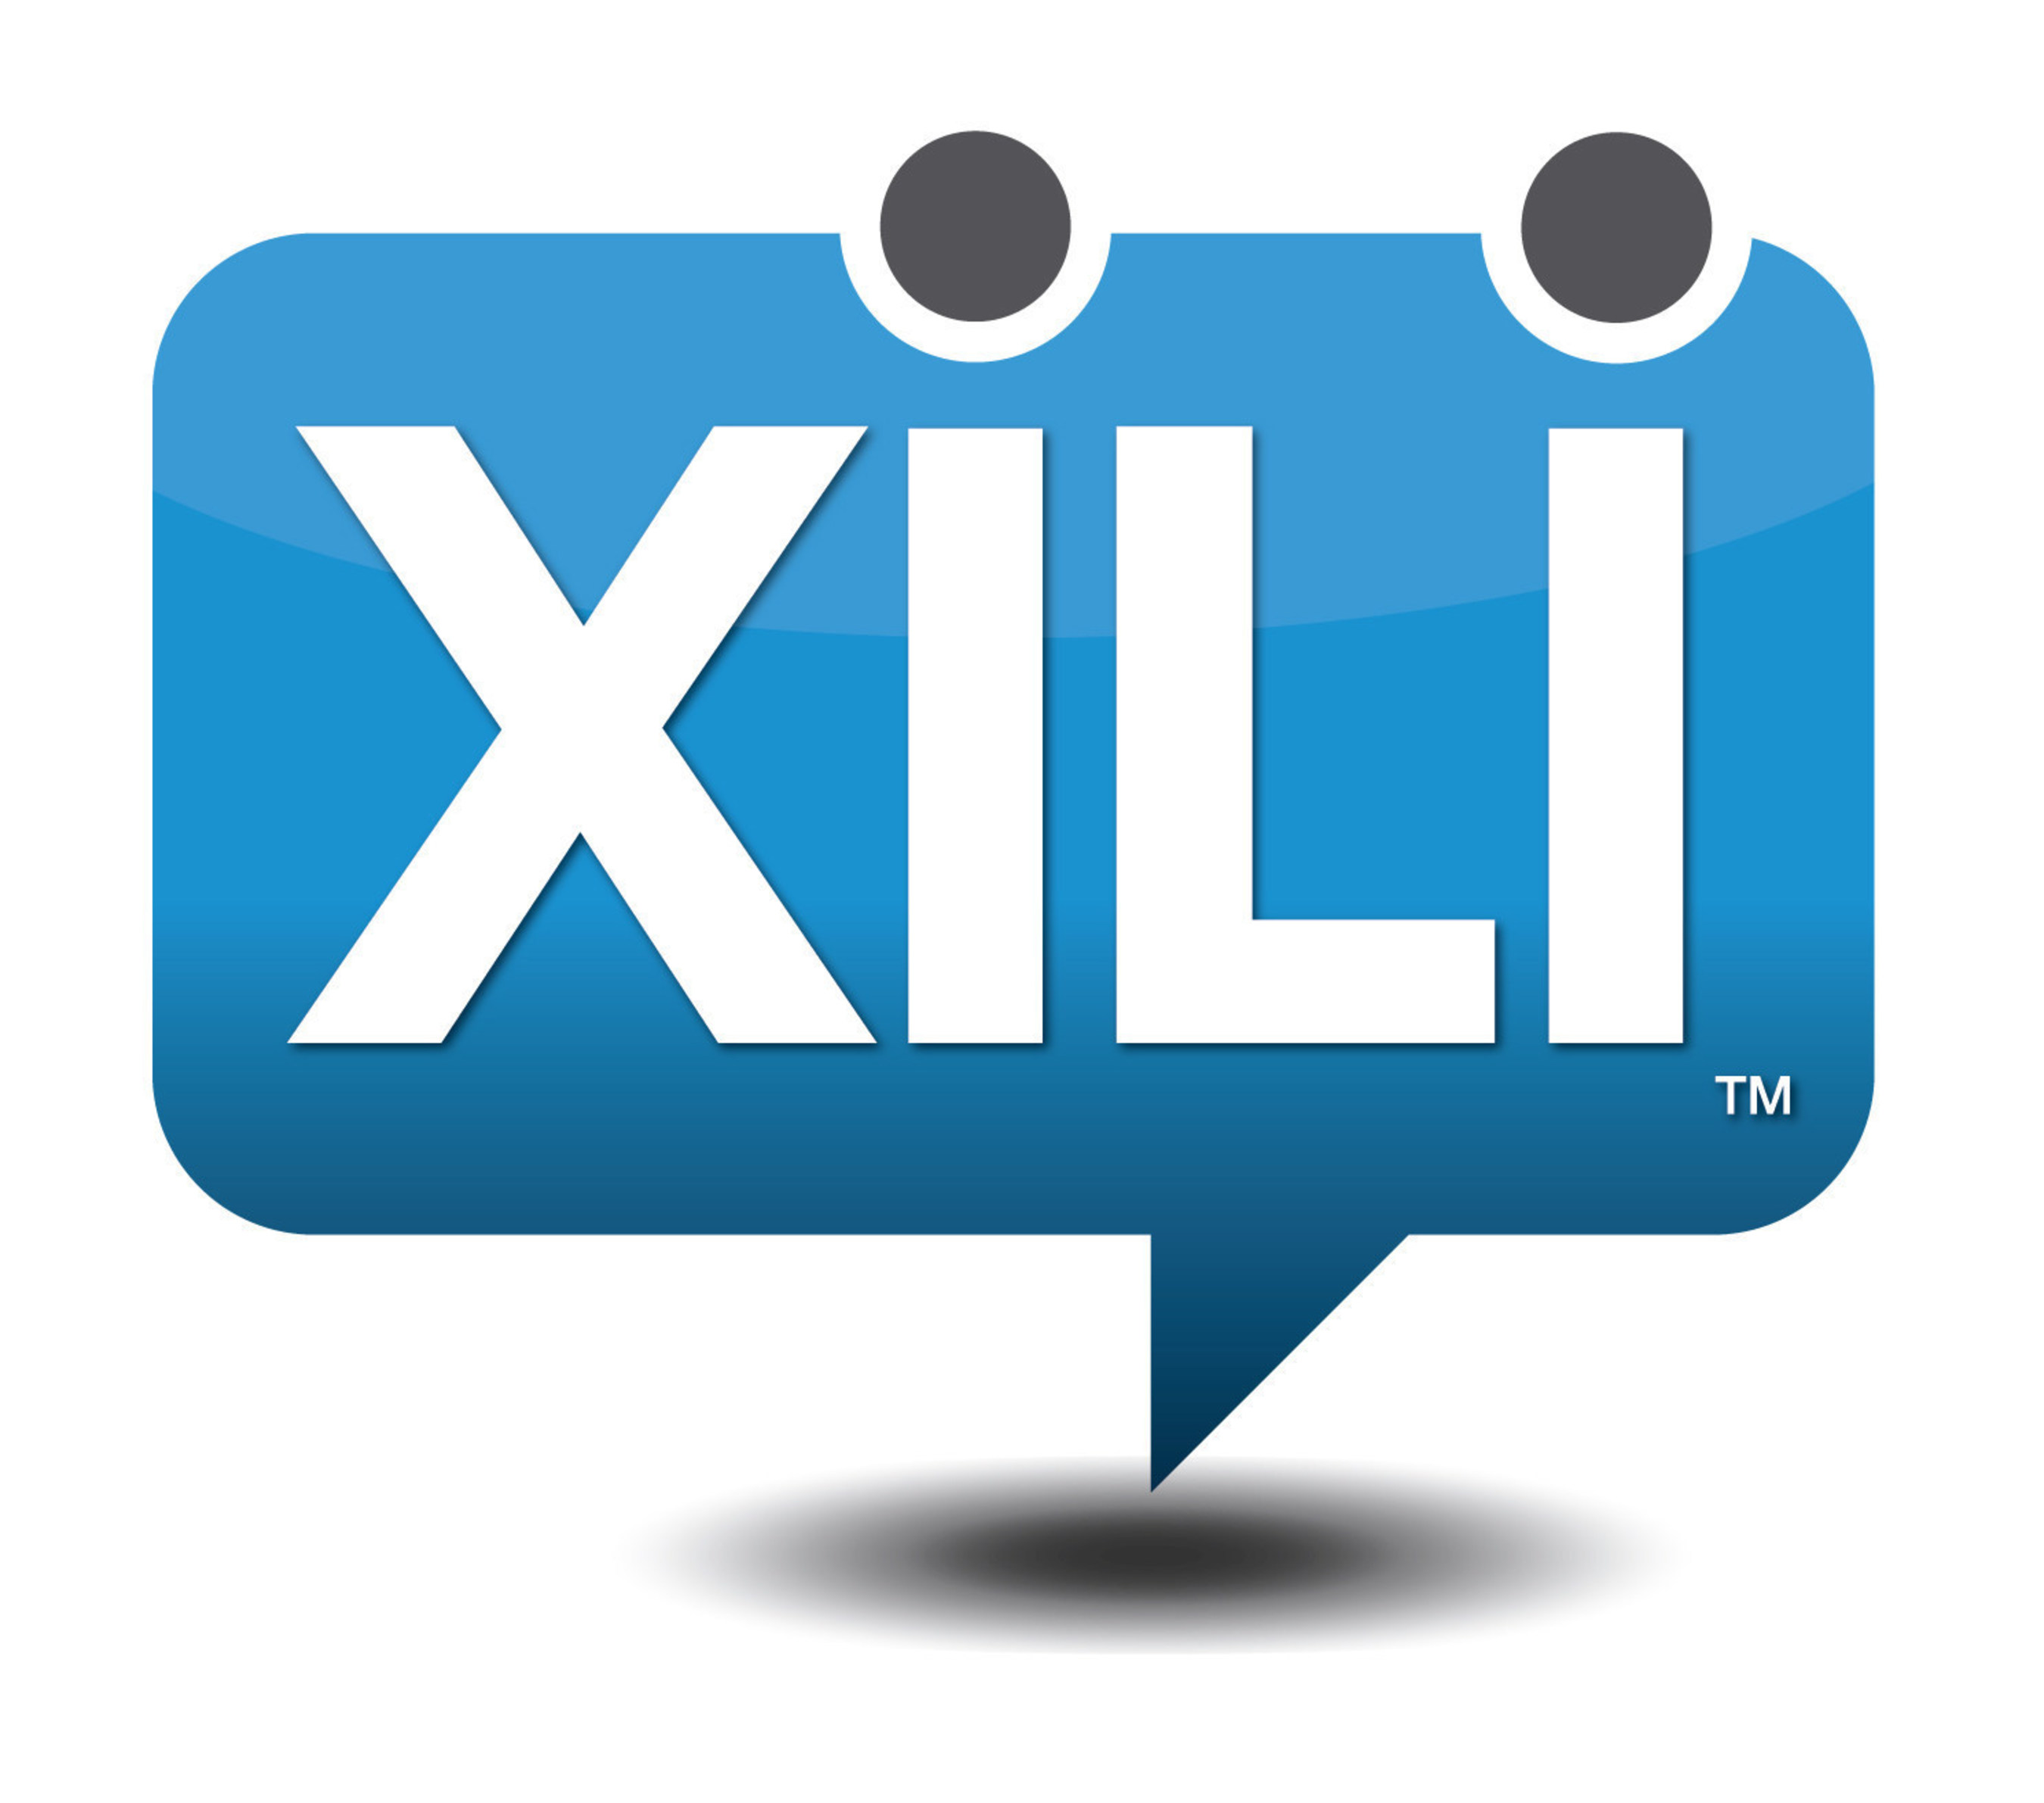 The leader in mobile marketing systems for real estate agents, XiLi Mobile, is pleased to announce the addition of Greg Hanson, former GM of Lending Tree and RealEstate.com.